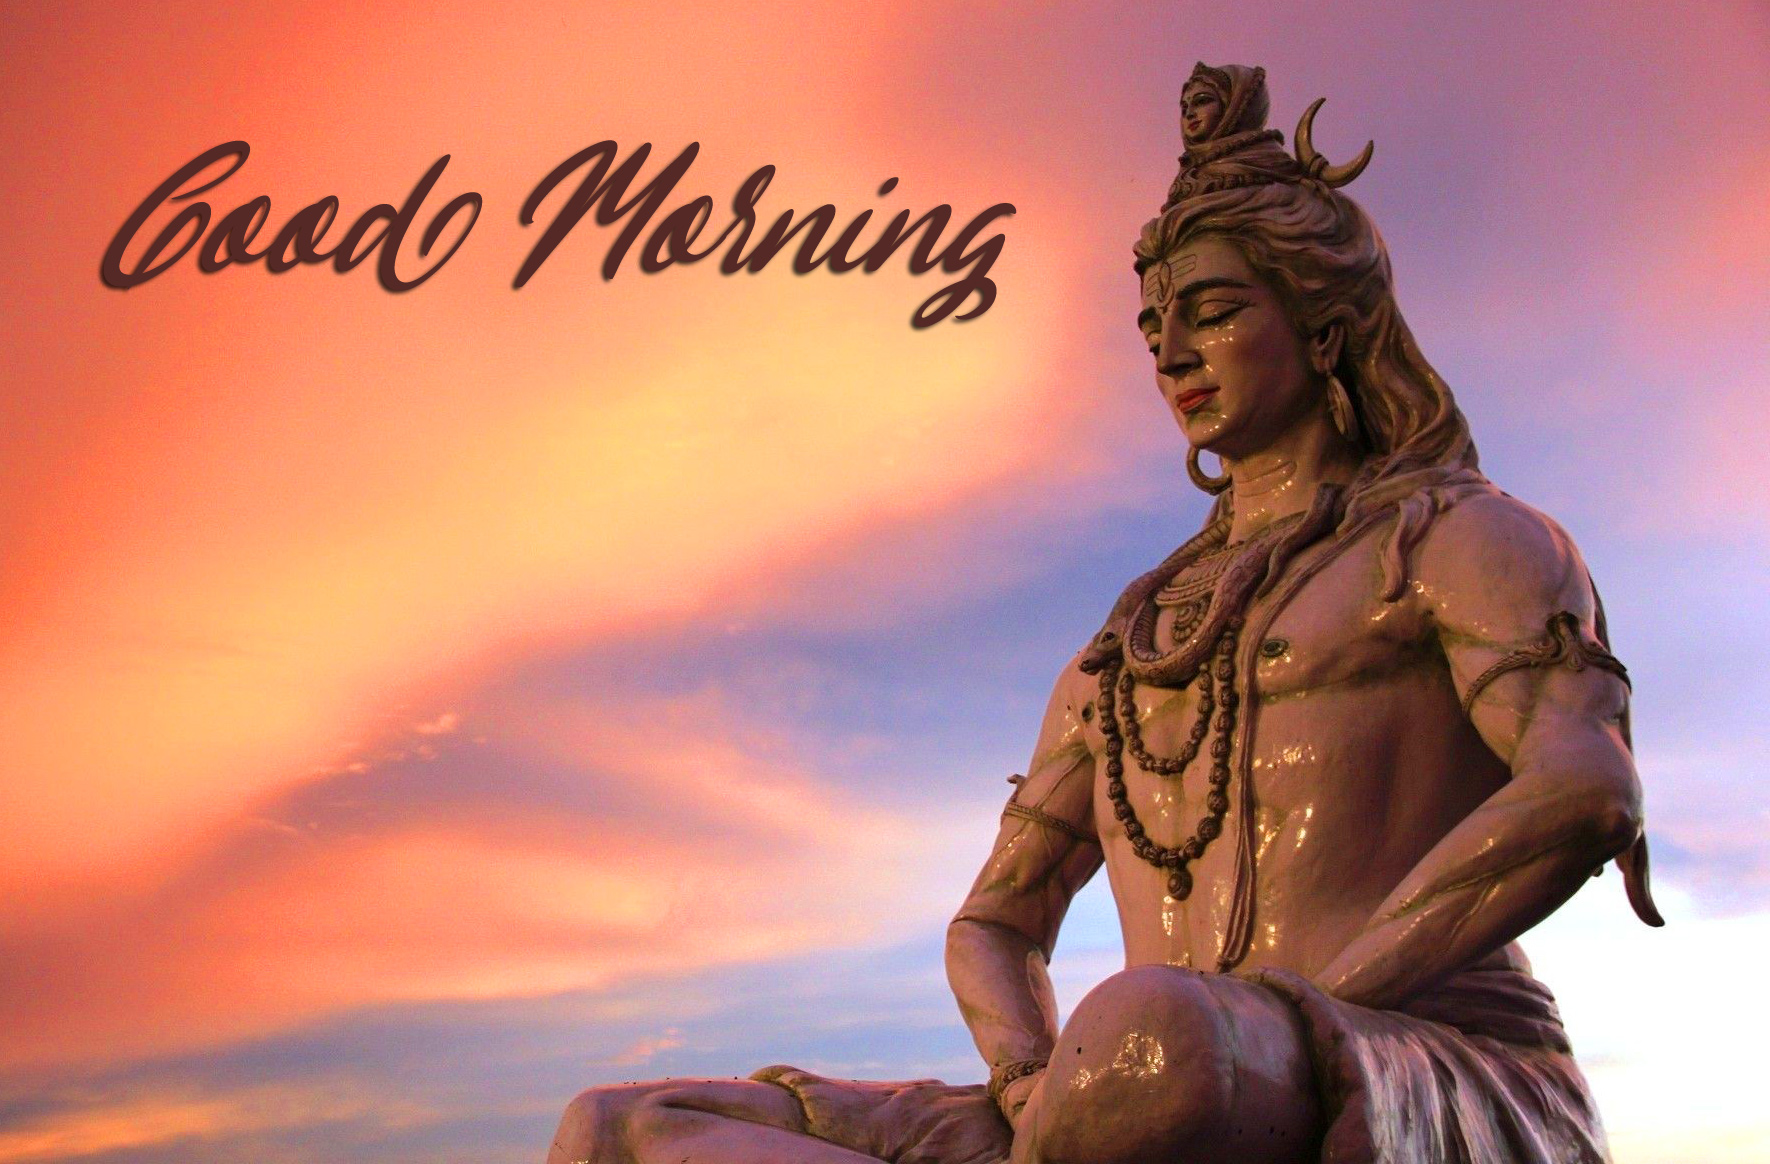 Clear Sky with Mahadev and Good Morning Wish